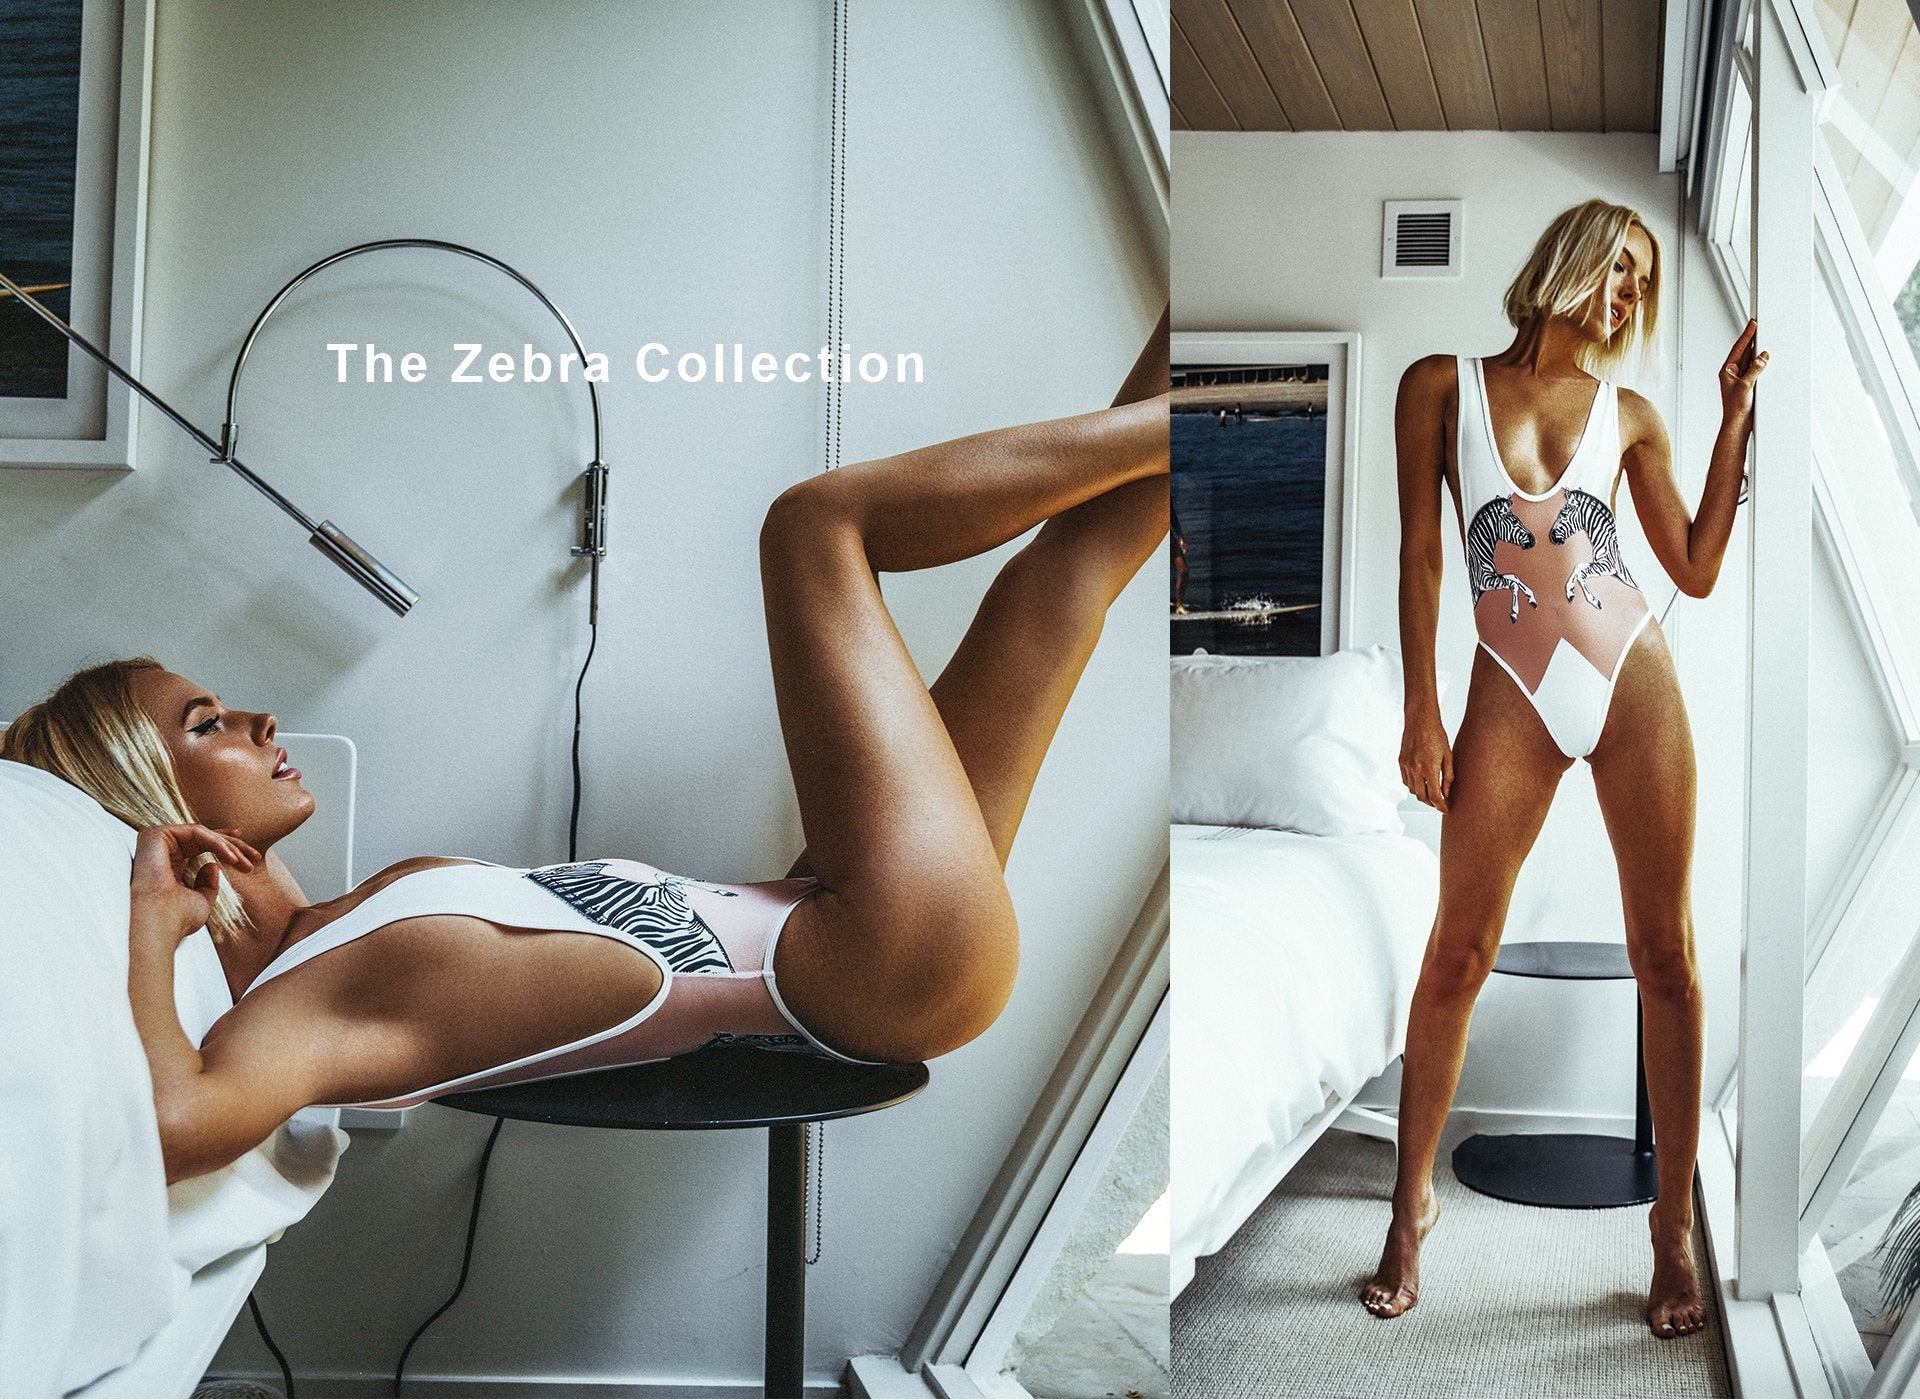 The Zebra Collection